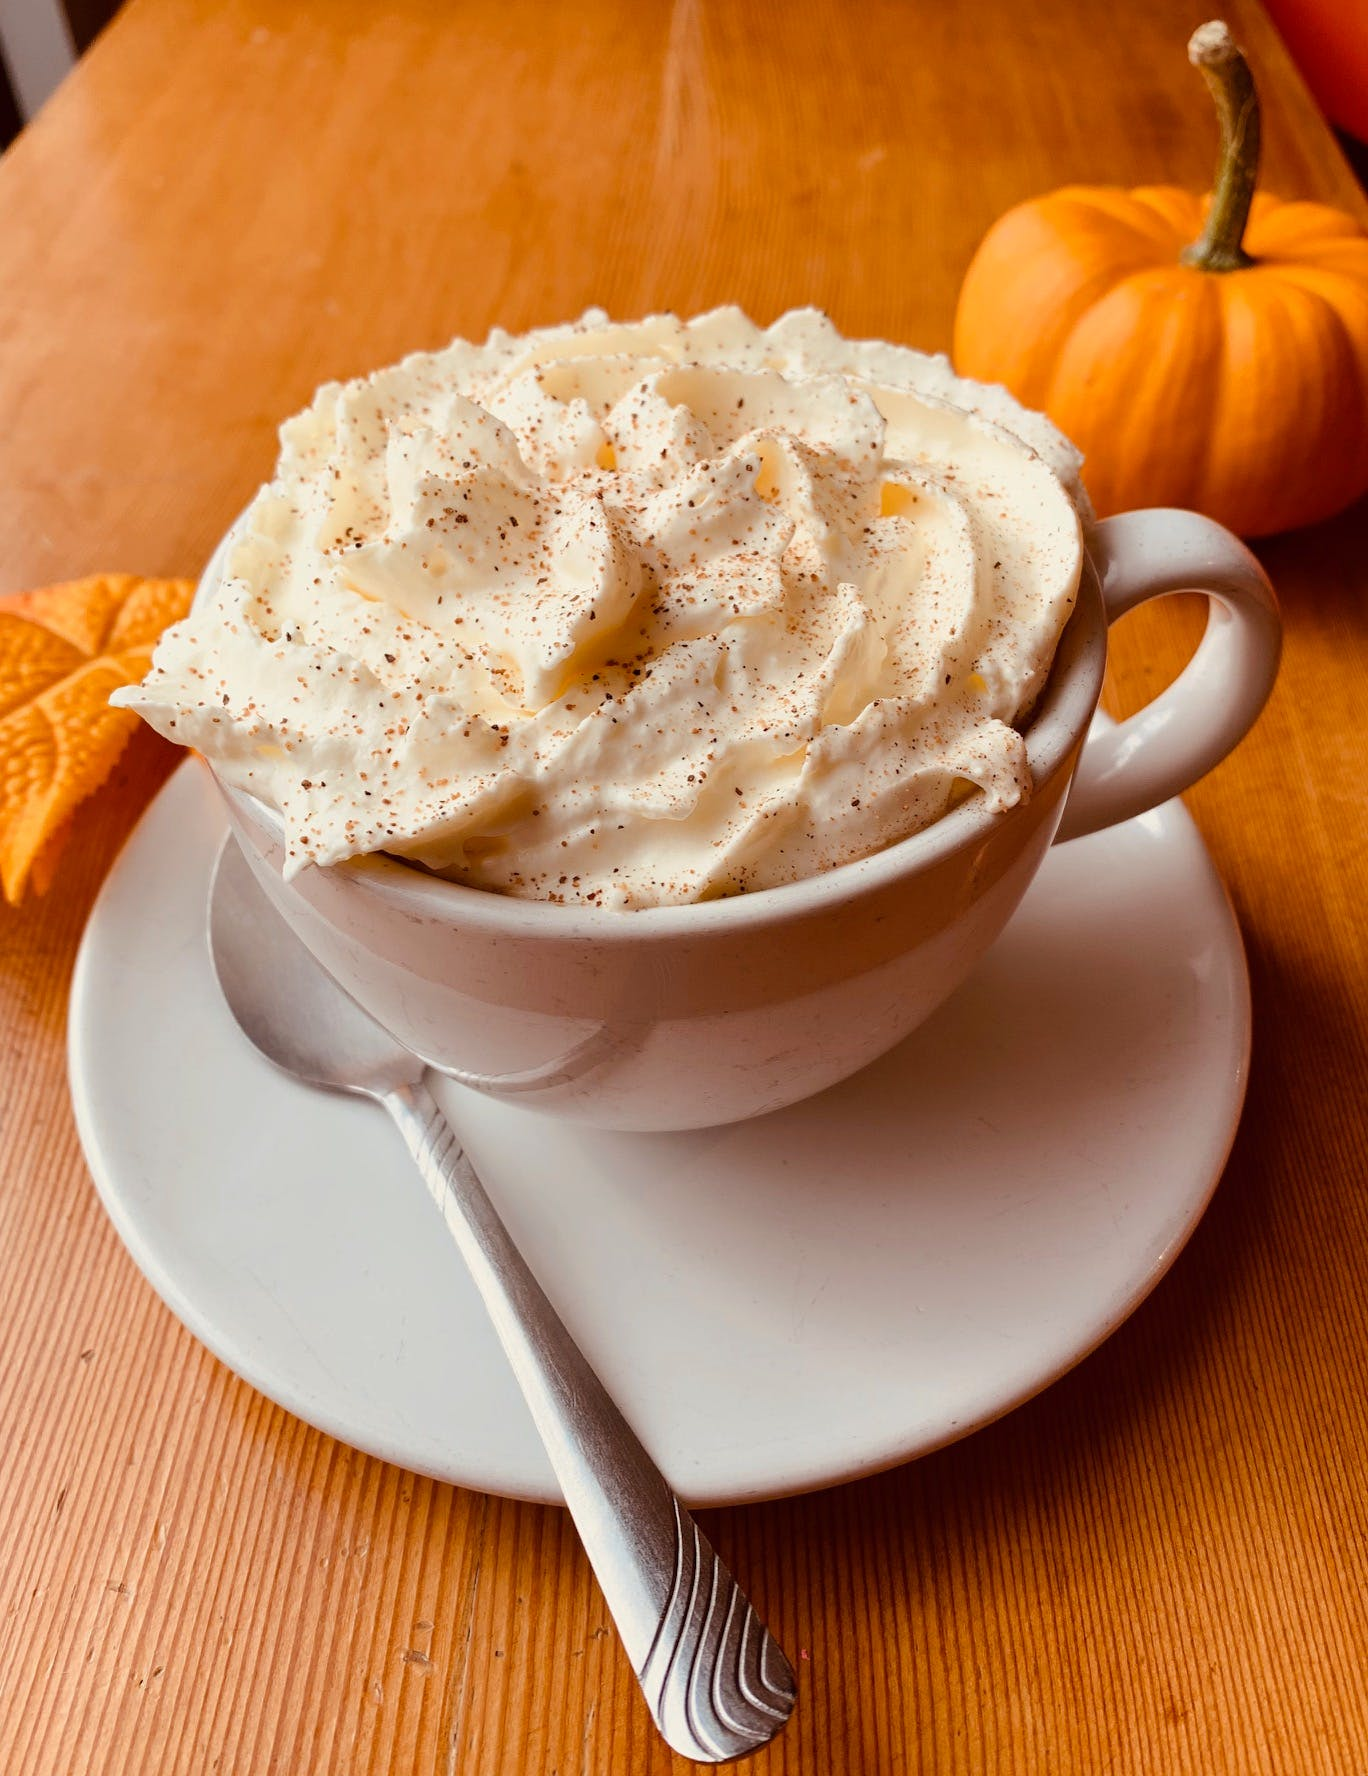 Pumpkin Spice latte to warm you on a chilly day